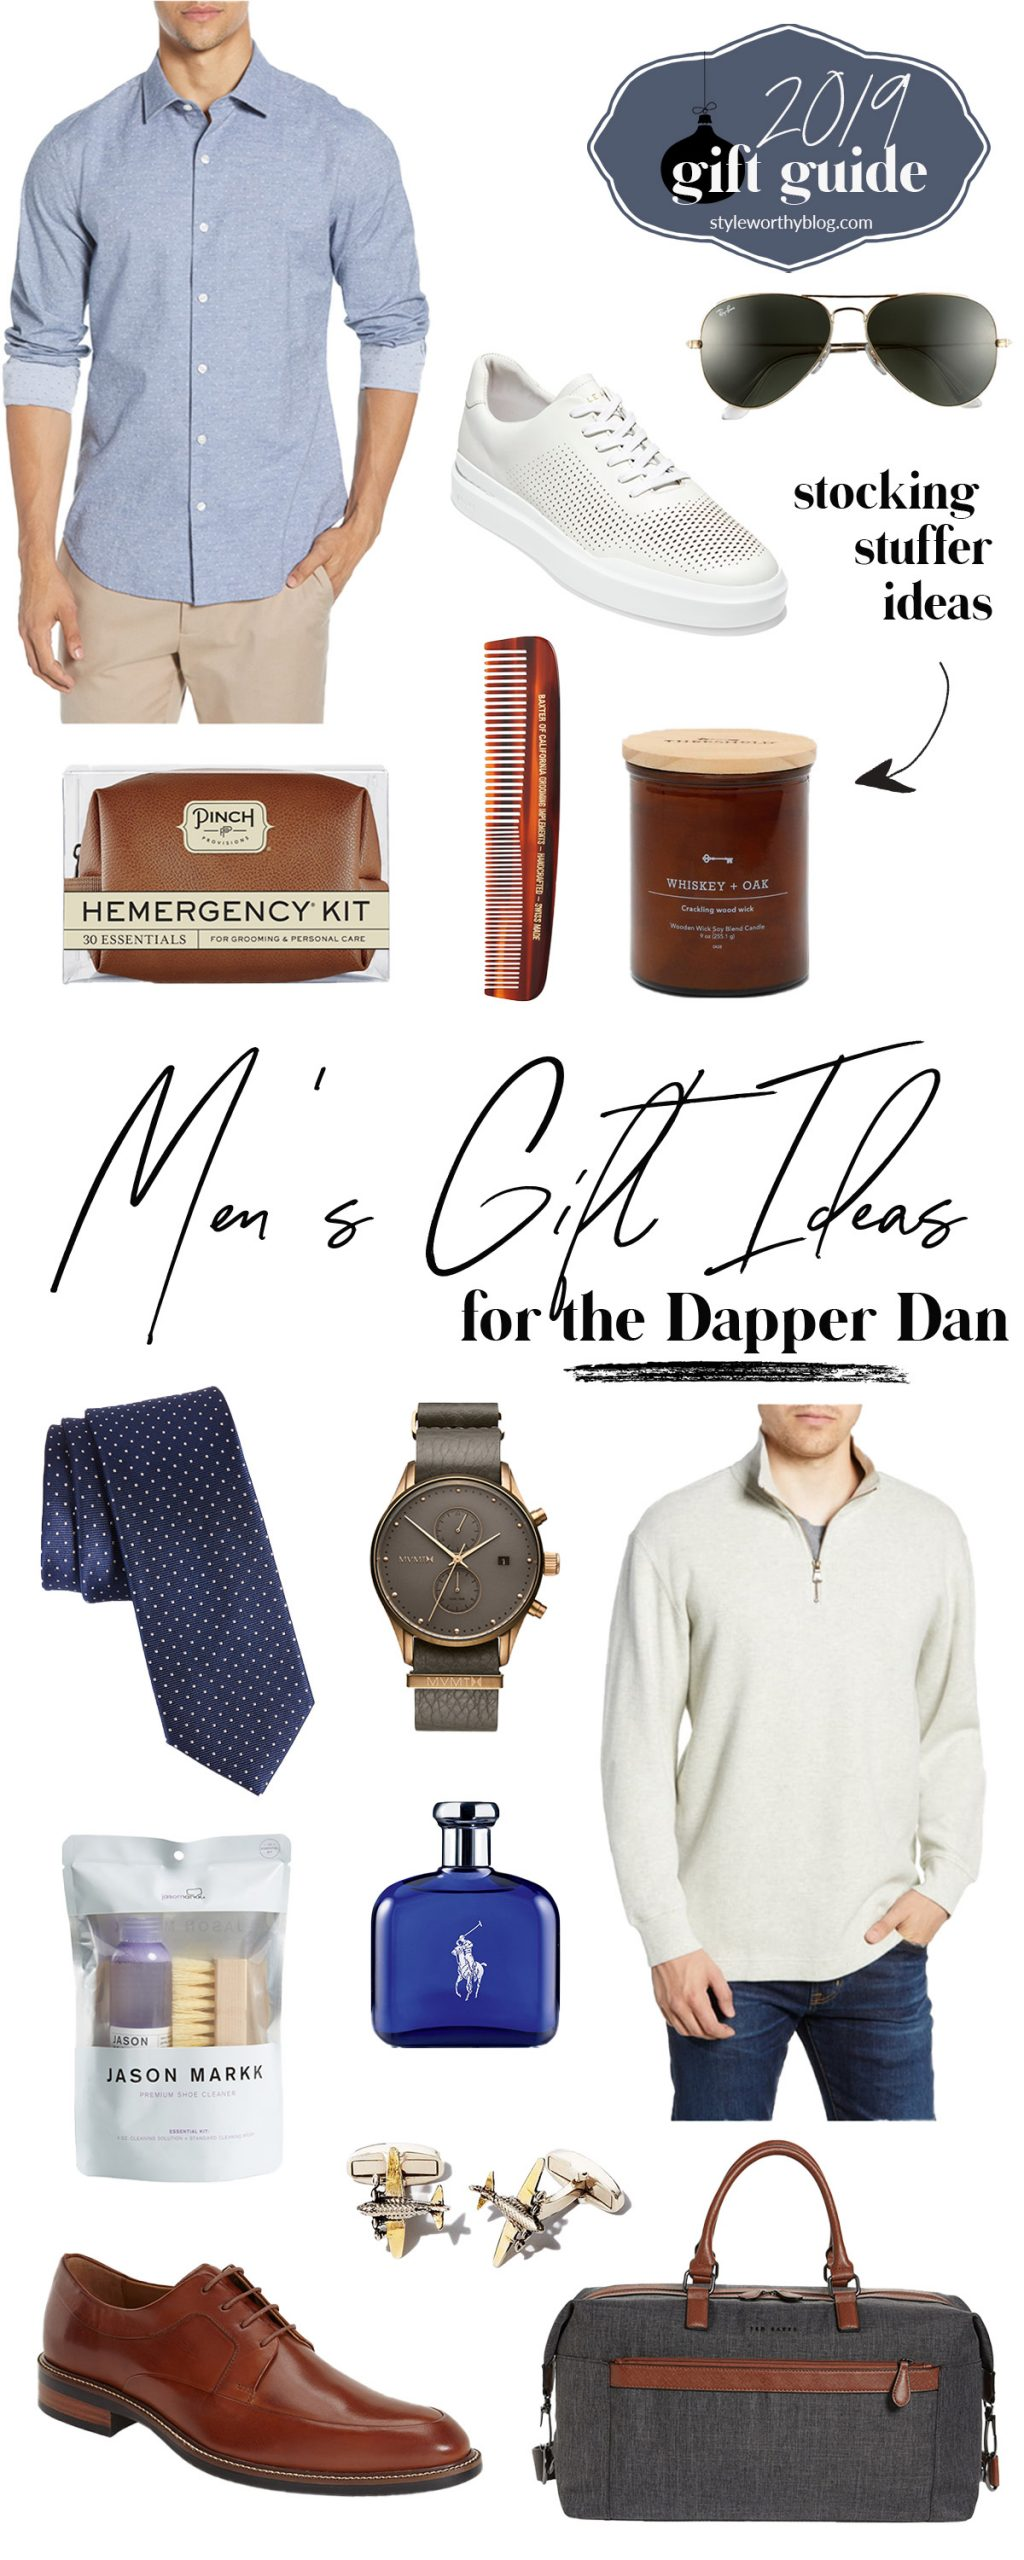 The Ultimate Men's Gift Guide 2019